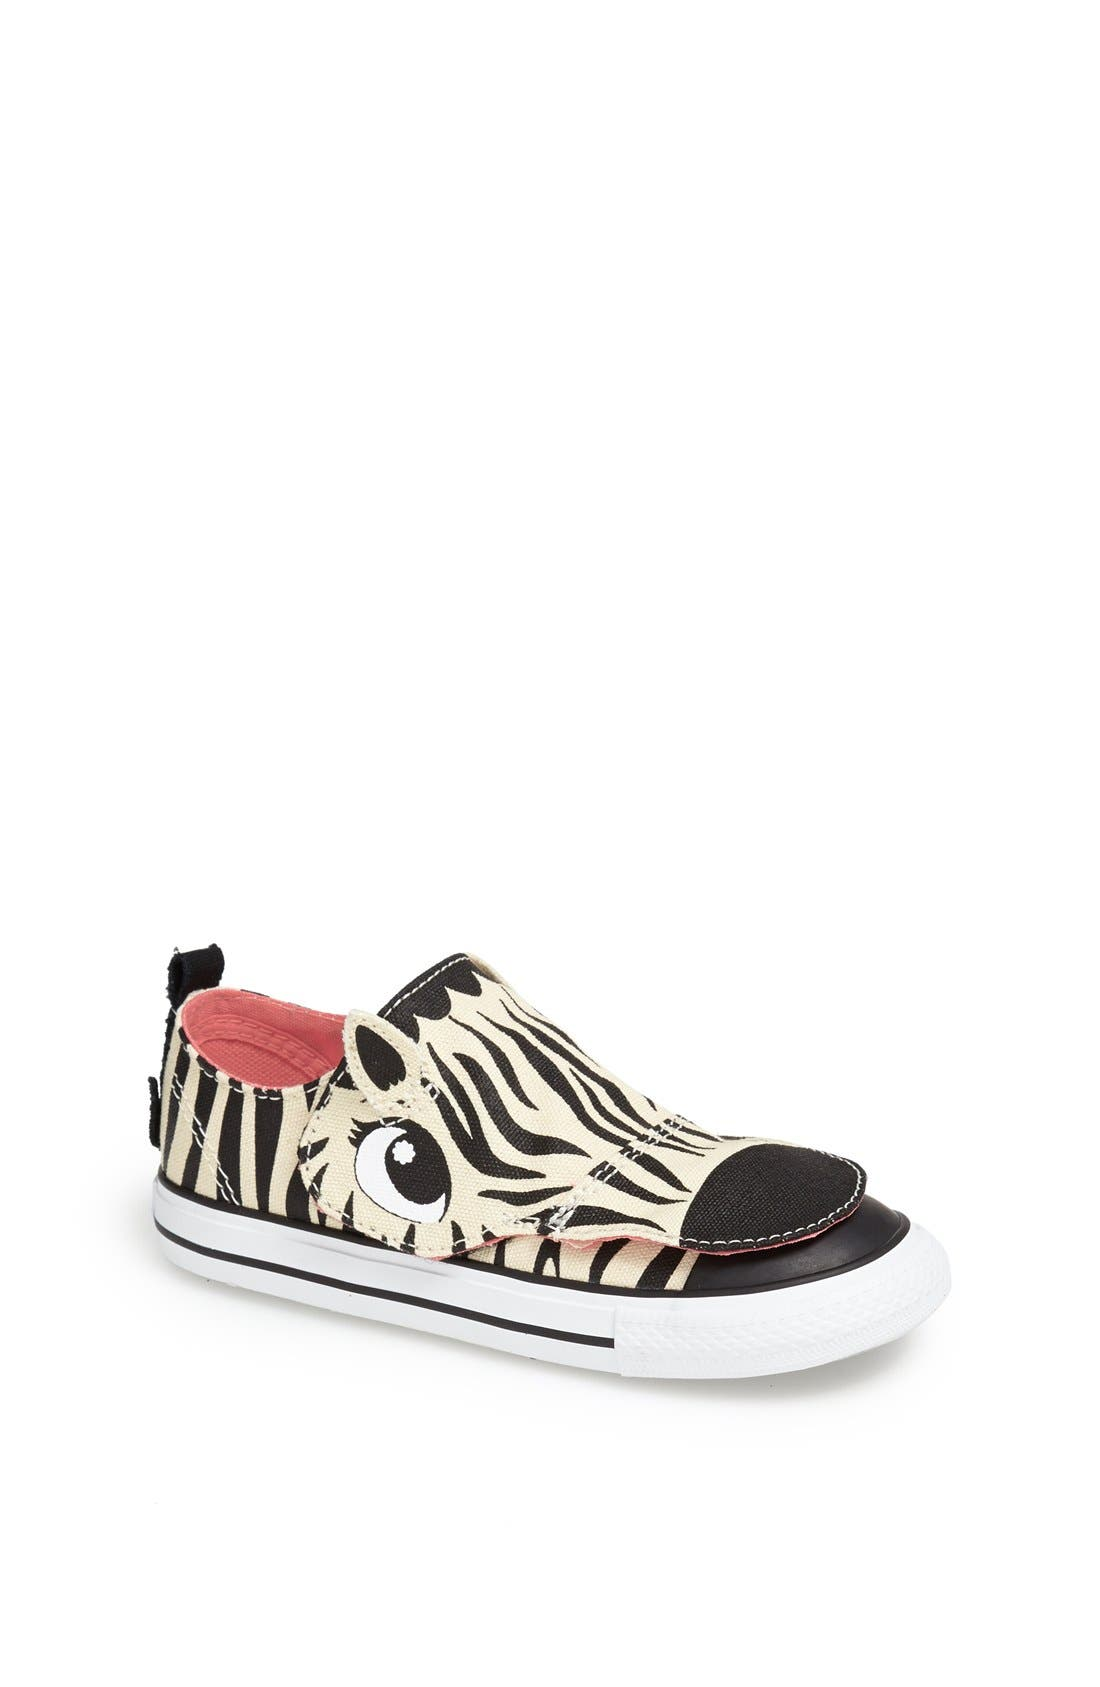 Main Image - Converse 'No Problem' Zebra Face Sneaker (Baby, Walker & Toddler)